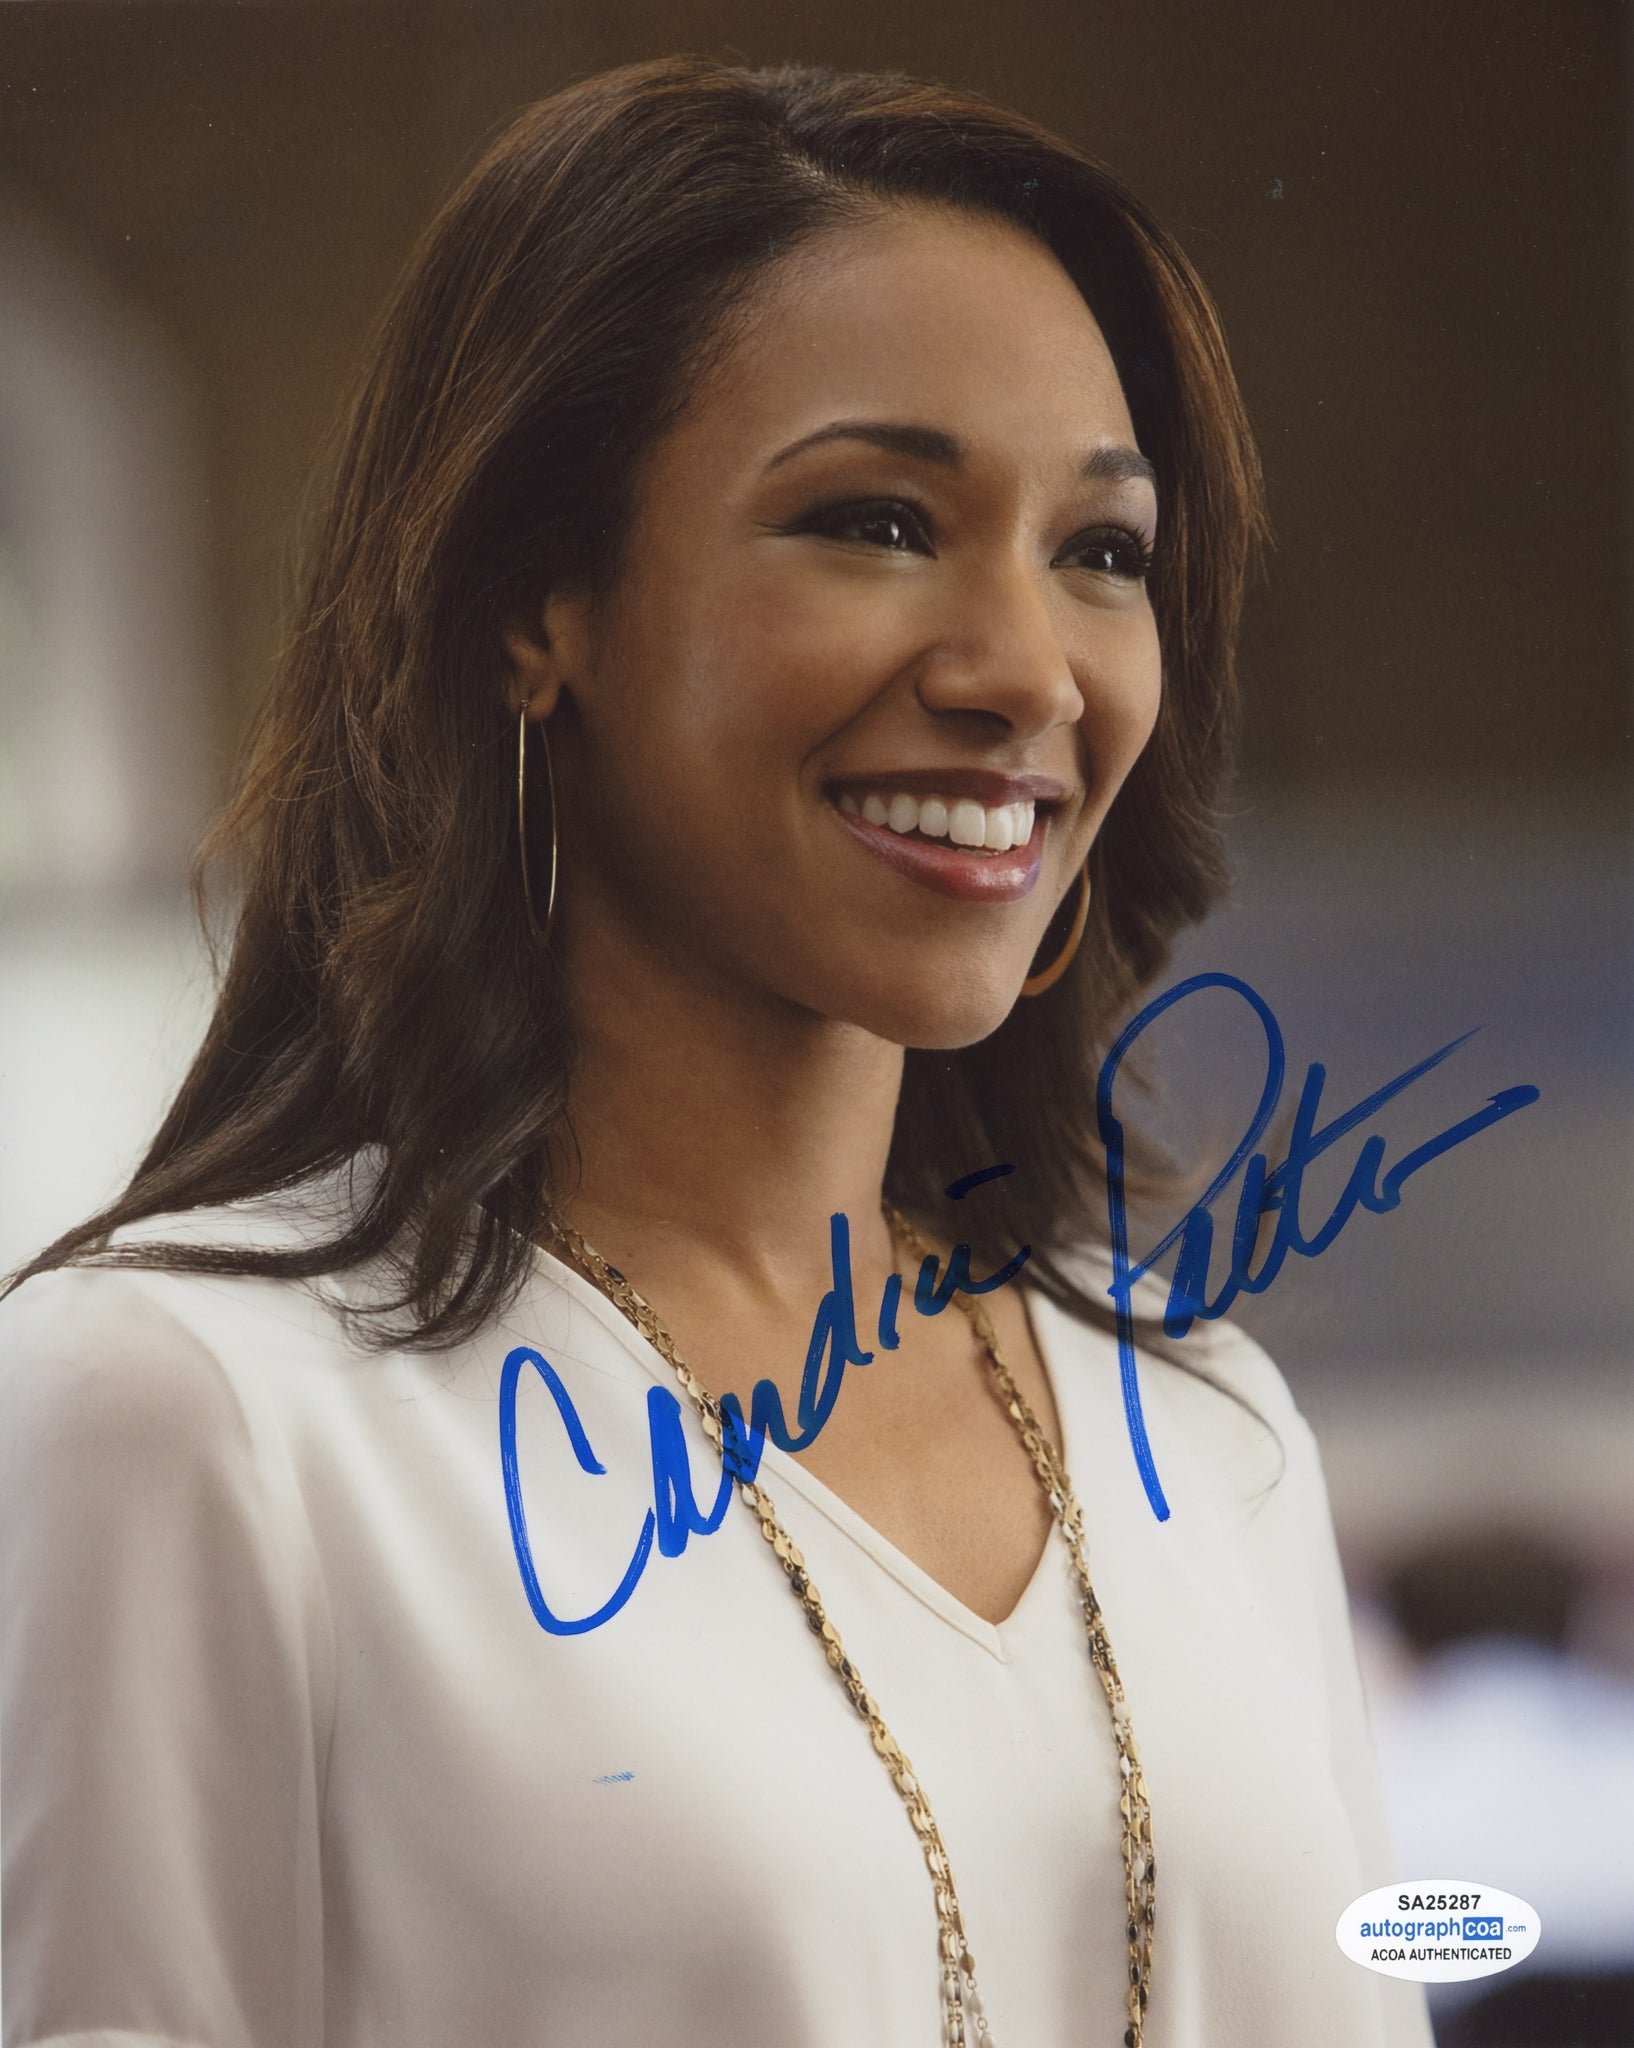 Candice Patton The Flash Sexy Signed Autograph 8x10 Photo ACOA Arrow